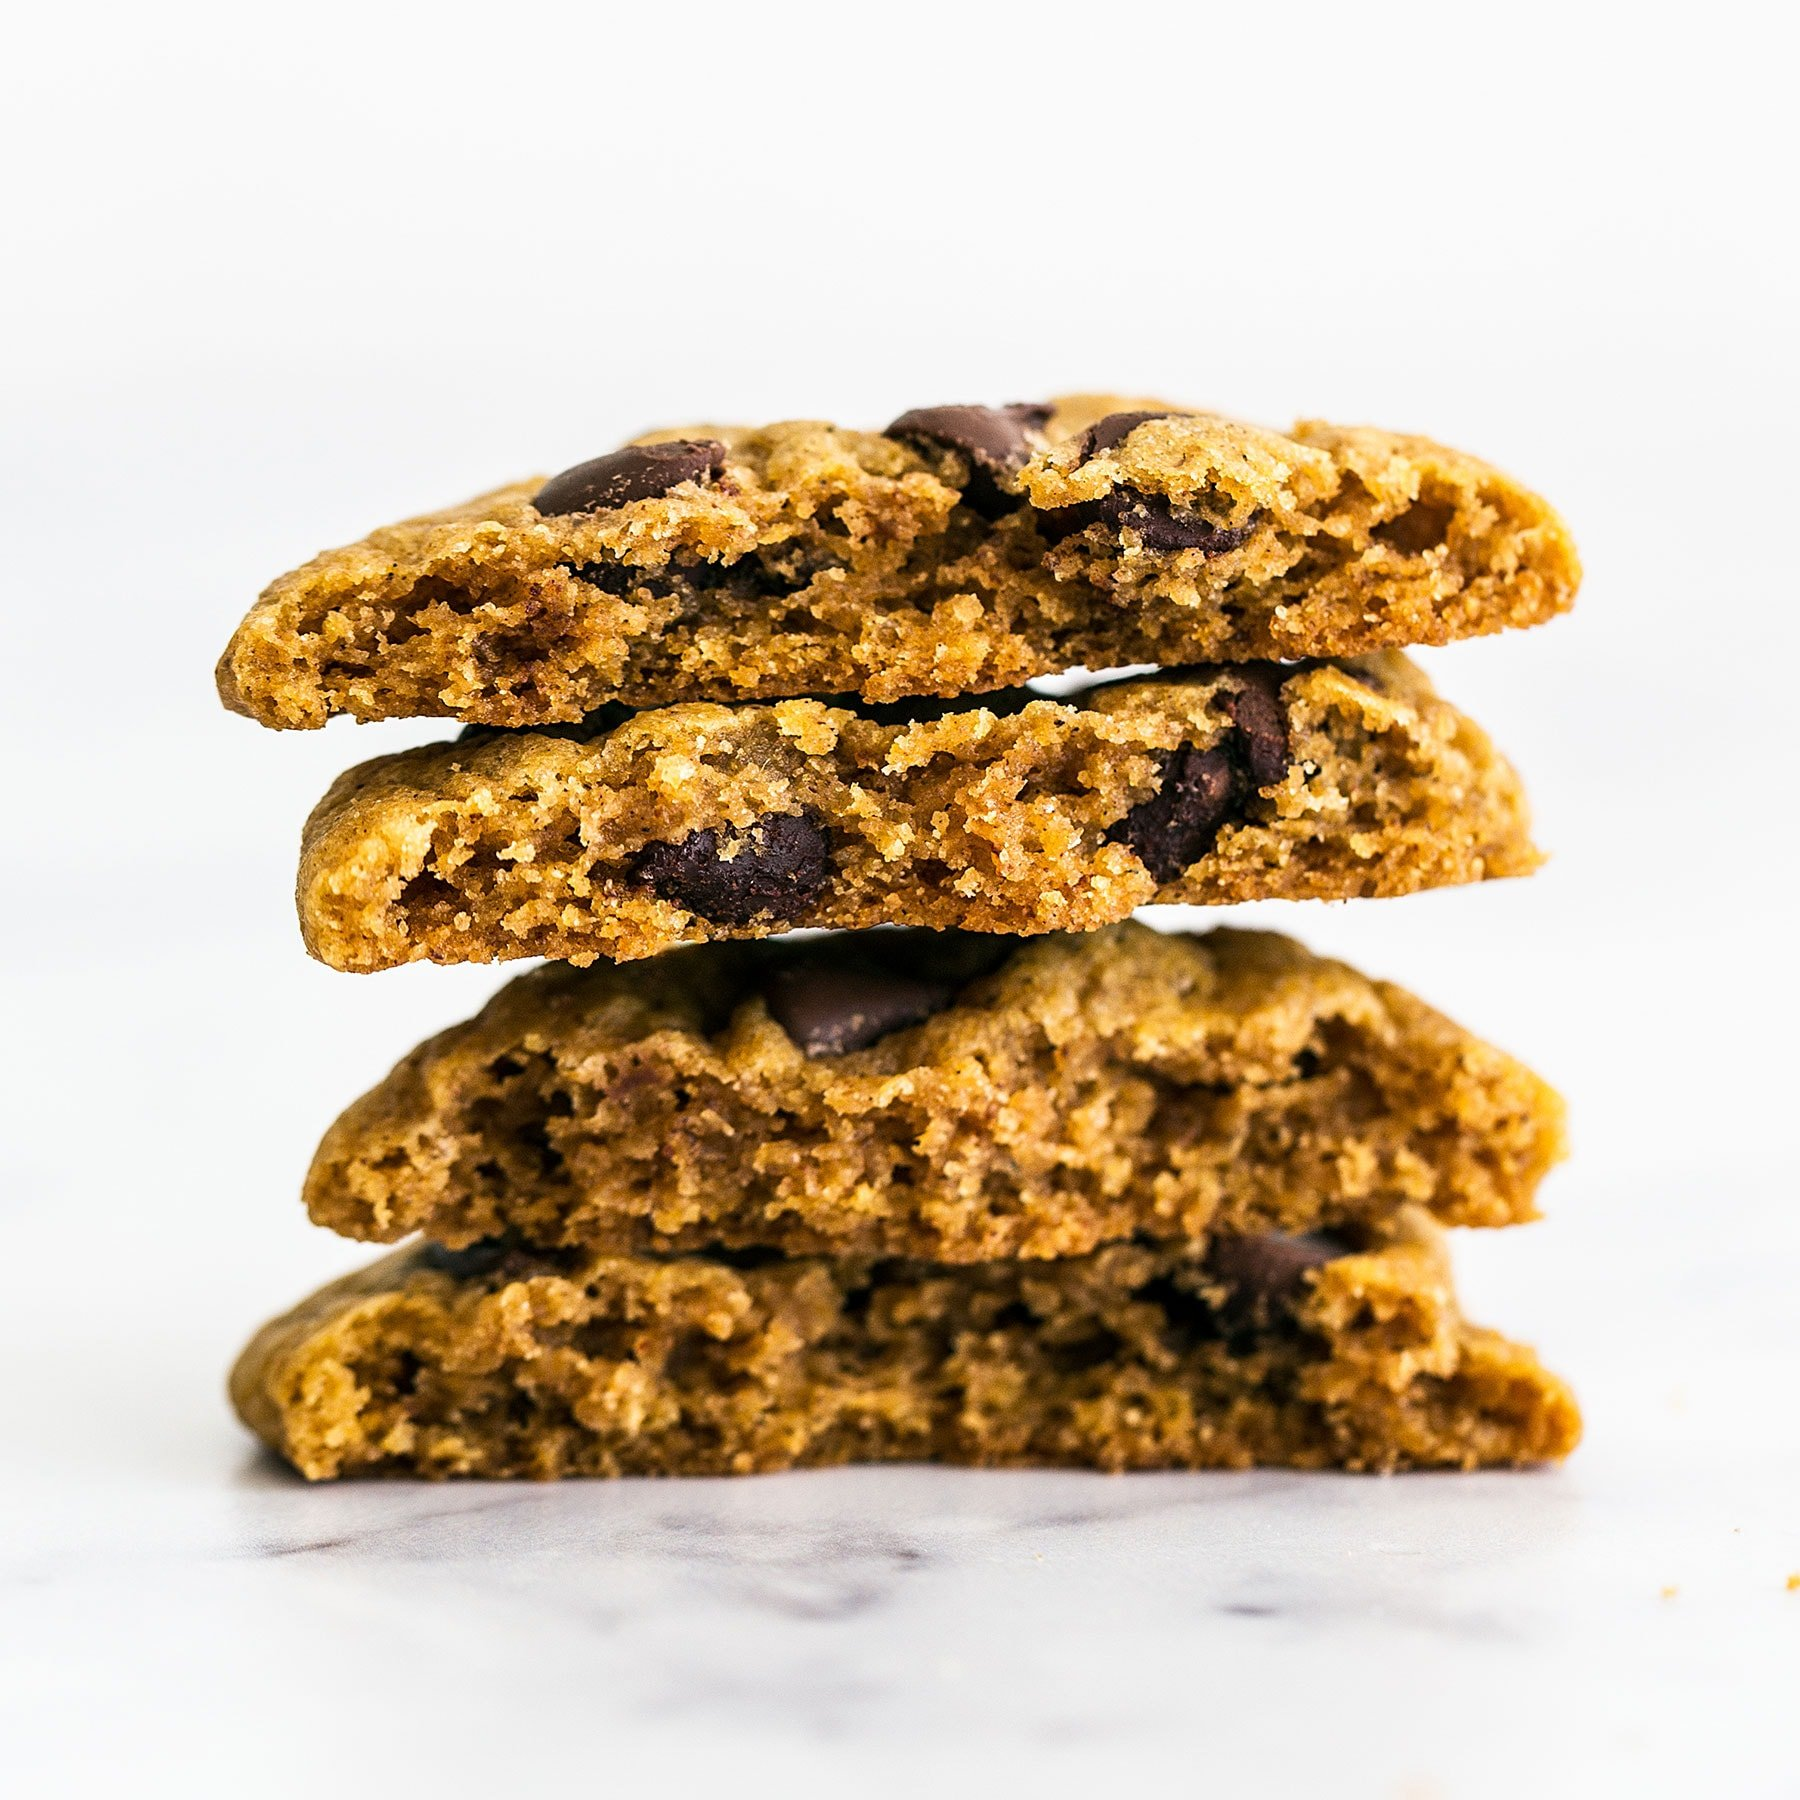 Brown Butter Pumpkin Chocolate Chip Cookies are CHEWY (not cakey) pumpkin spice cookies loaded with tons of caramelized butterscotch flavor and gooey chocolate chips. A fall favorite!